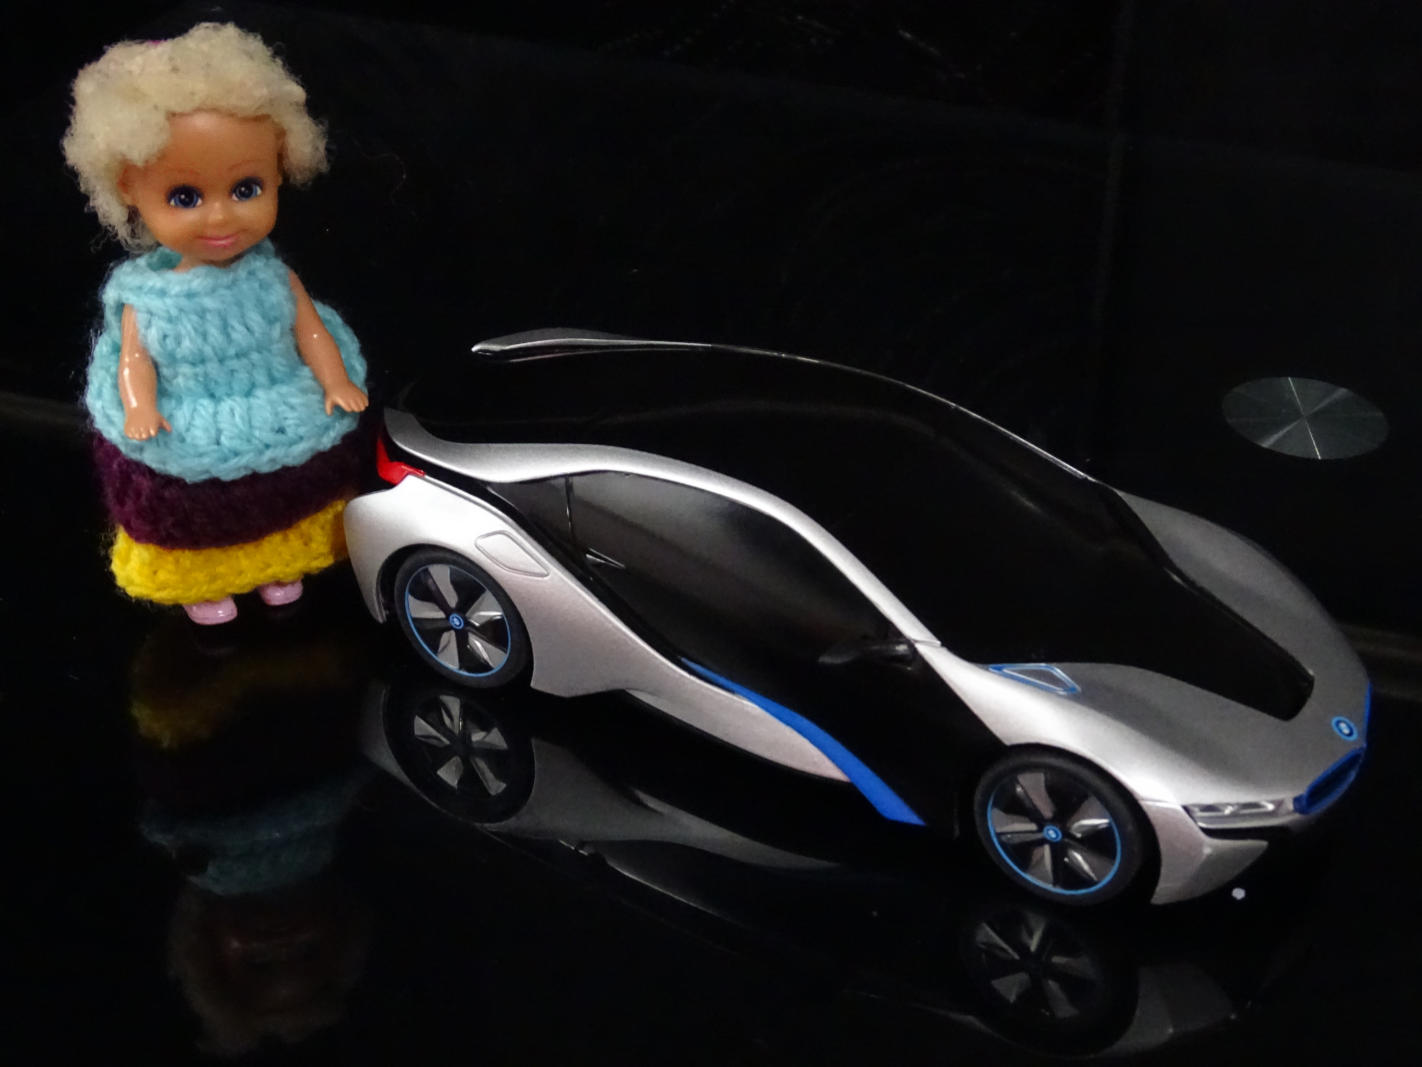 Photoshoot-a-doll-friend-posing-with-her-car